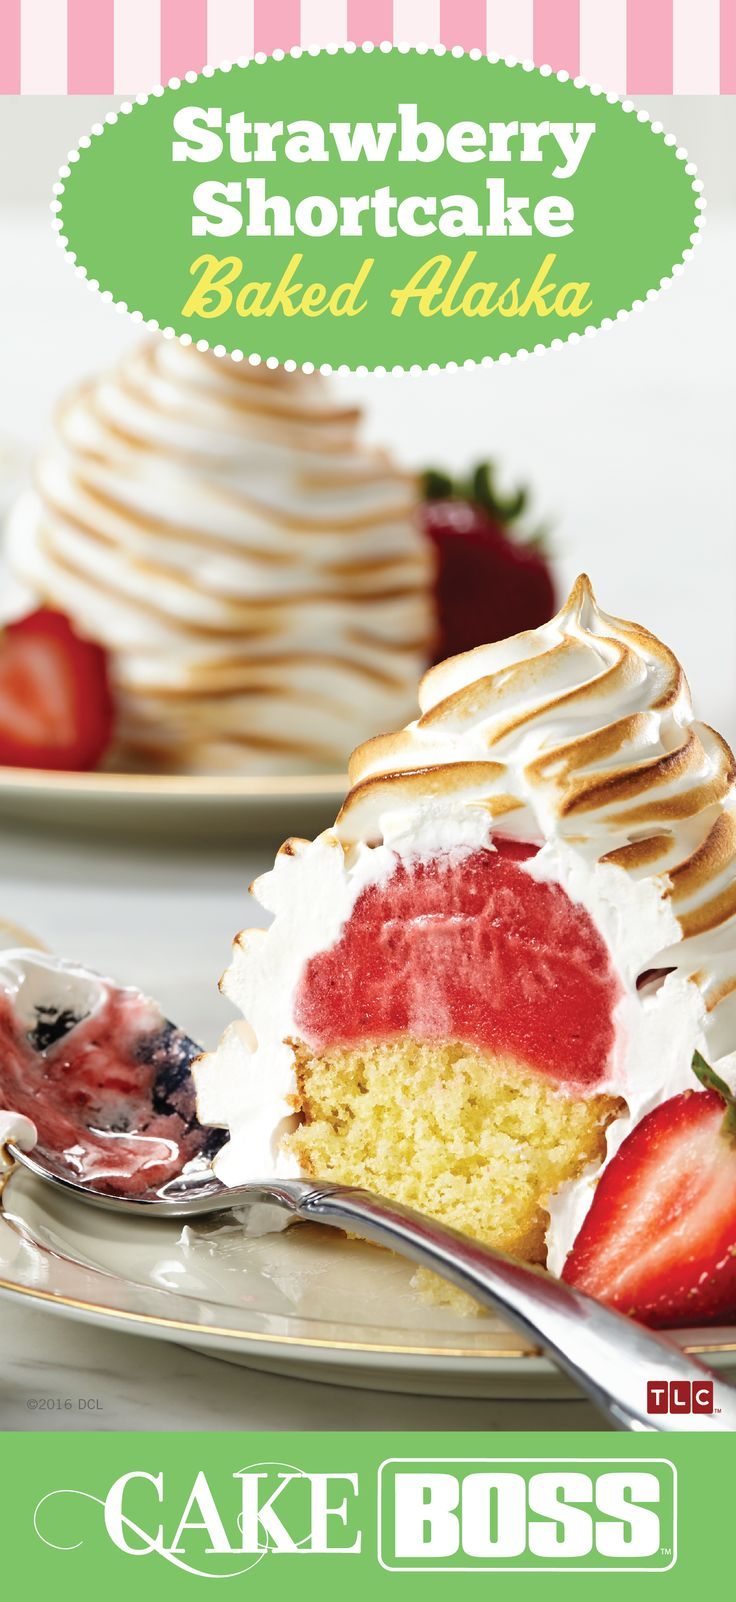 Buttery pound cake topped with sweet frozen strawberry sorbet and fluffy, brûléed meringue. Click on the image for our Strawberry Shortcake Baked Alaska recip